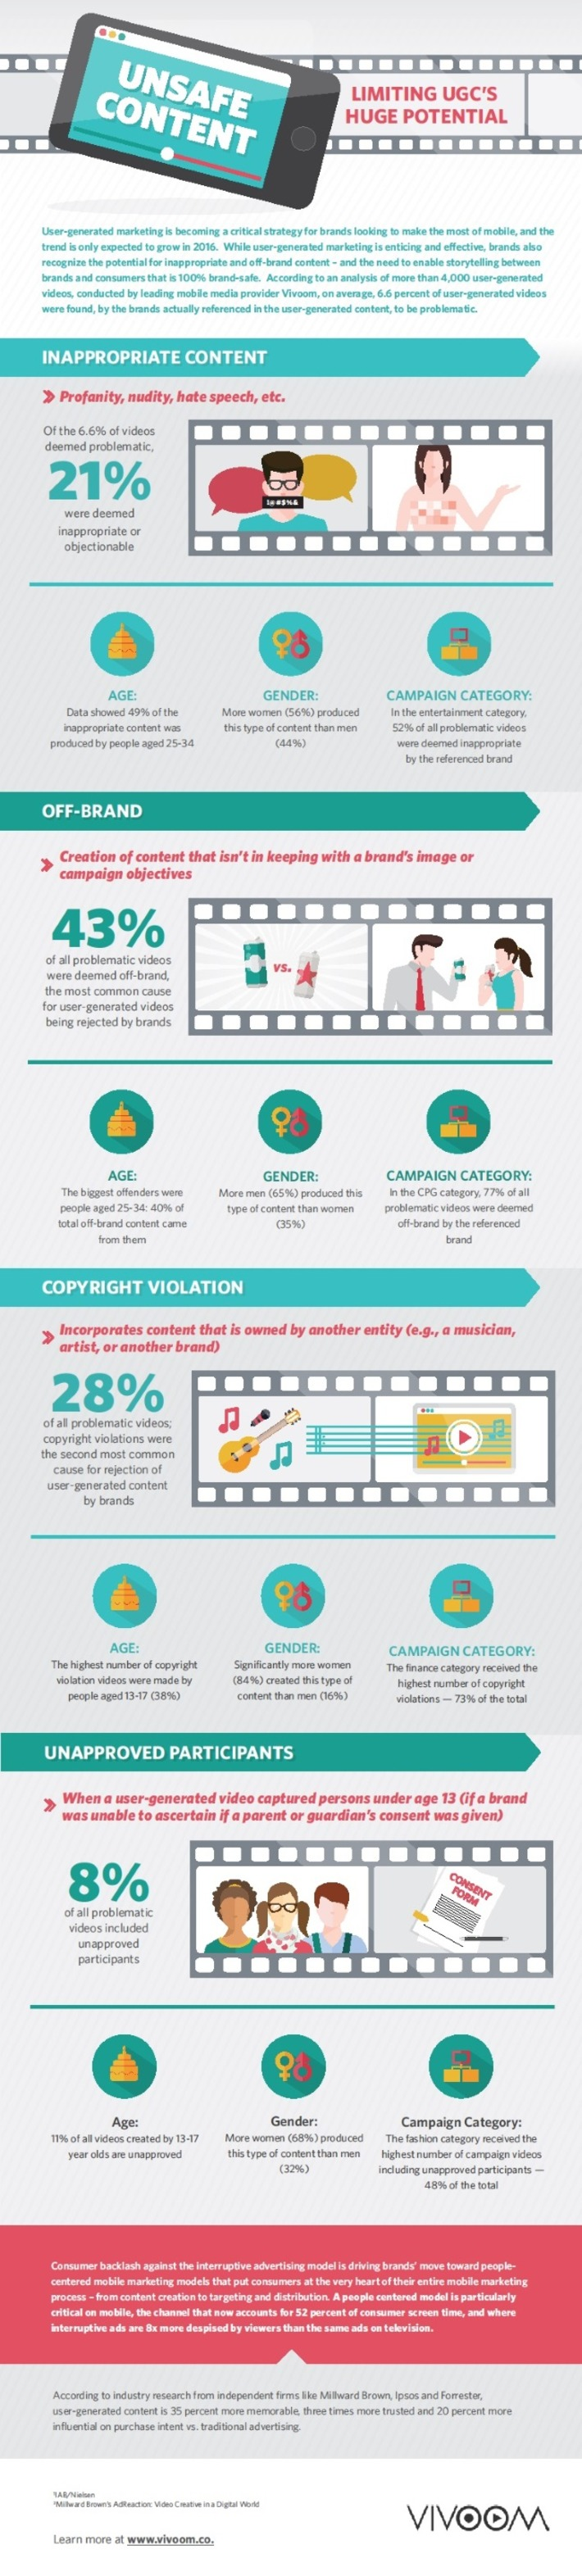 User-Generated Content Landmines to Watch Out For #Infographic | Consumption Junction | Scoop.it